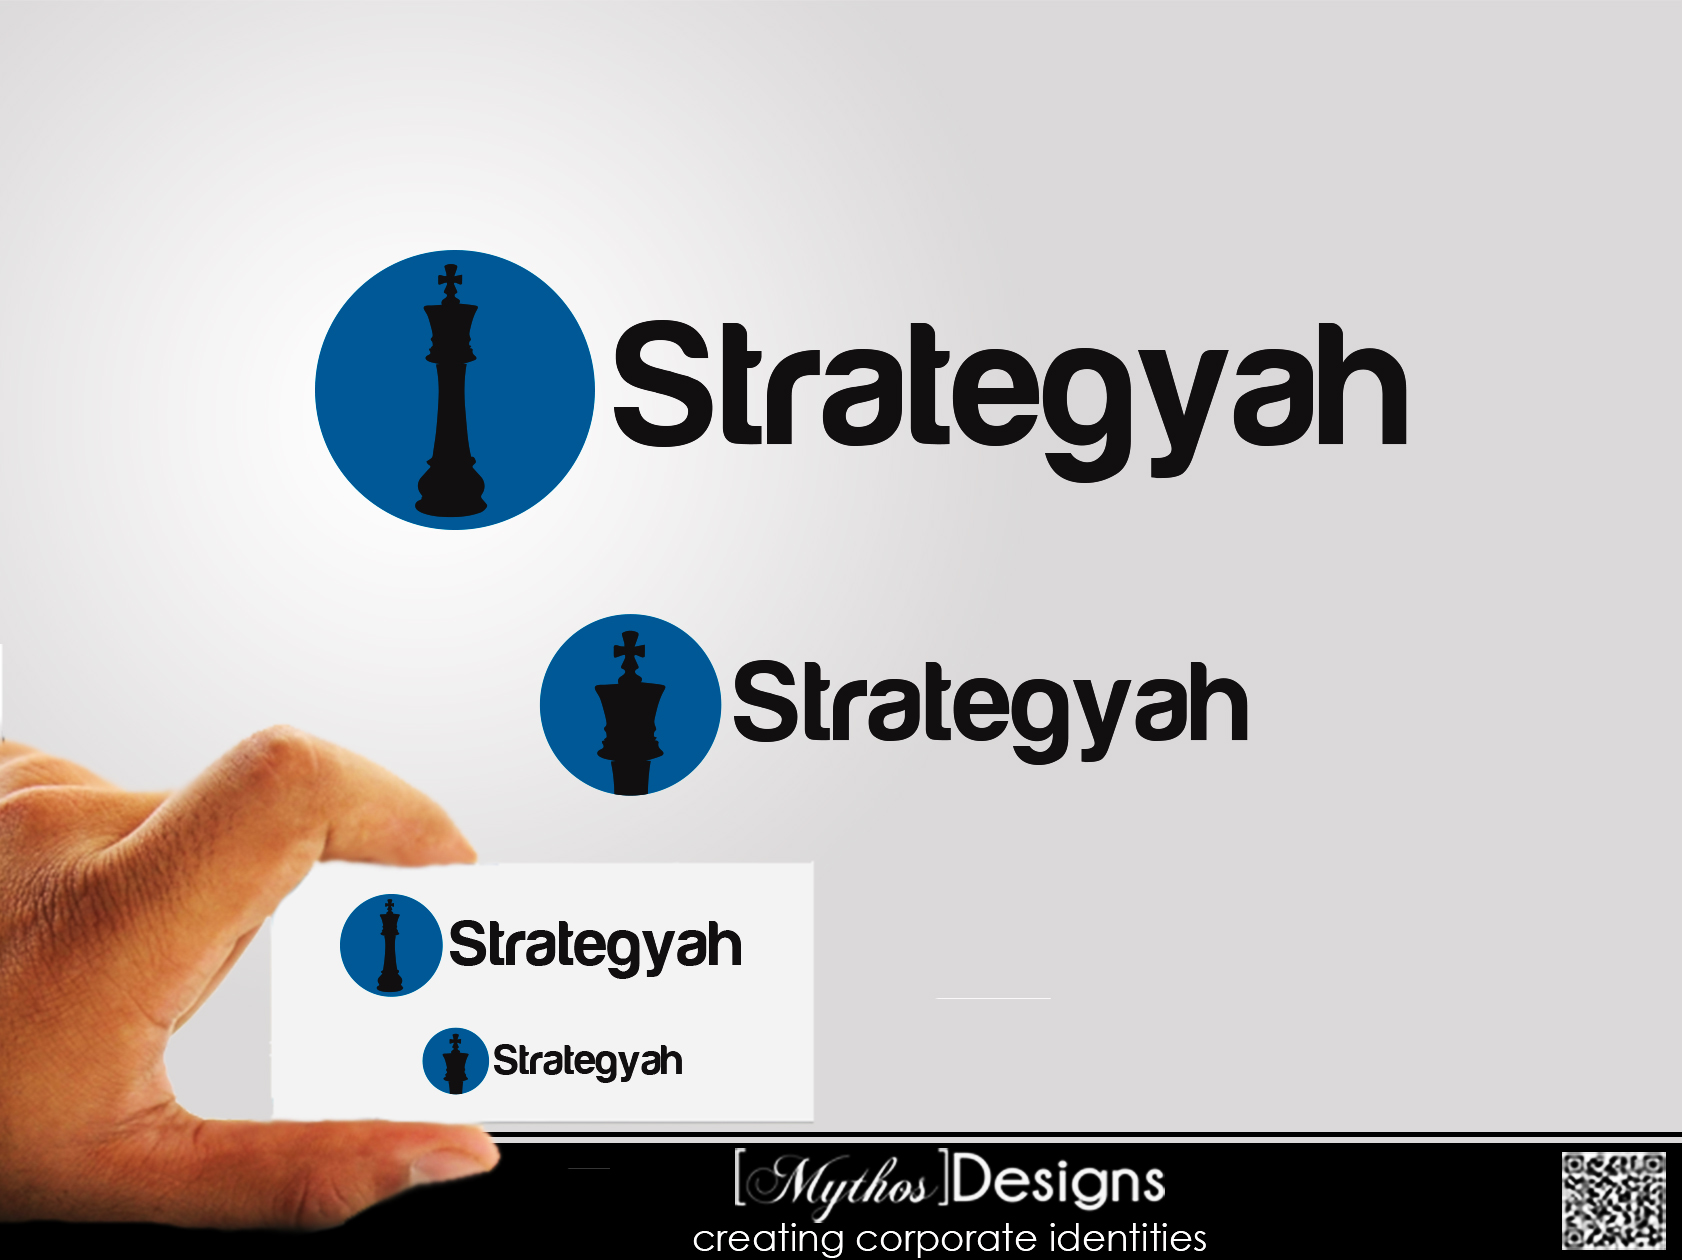 Logo Design by Mythos Designs - Entry No. 476 in the Logo Design Contest Creative Logo Design for Strategyah.